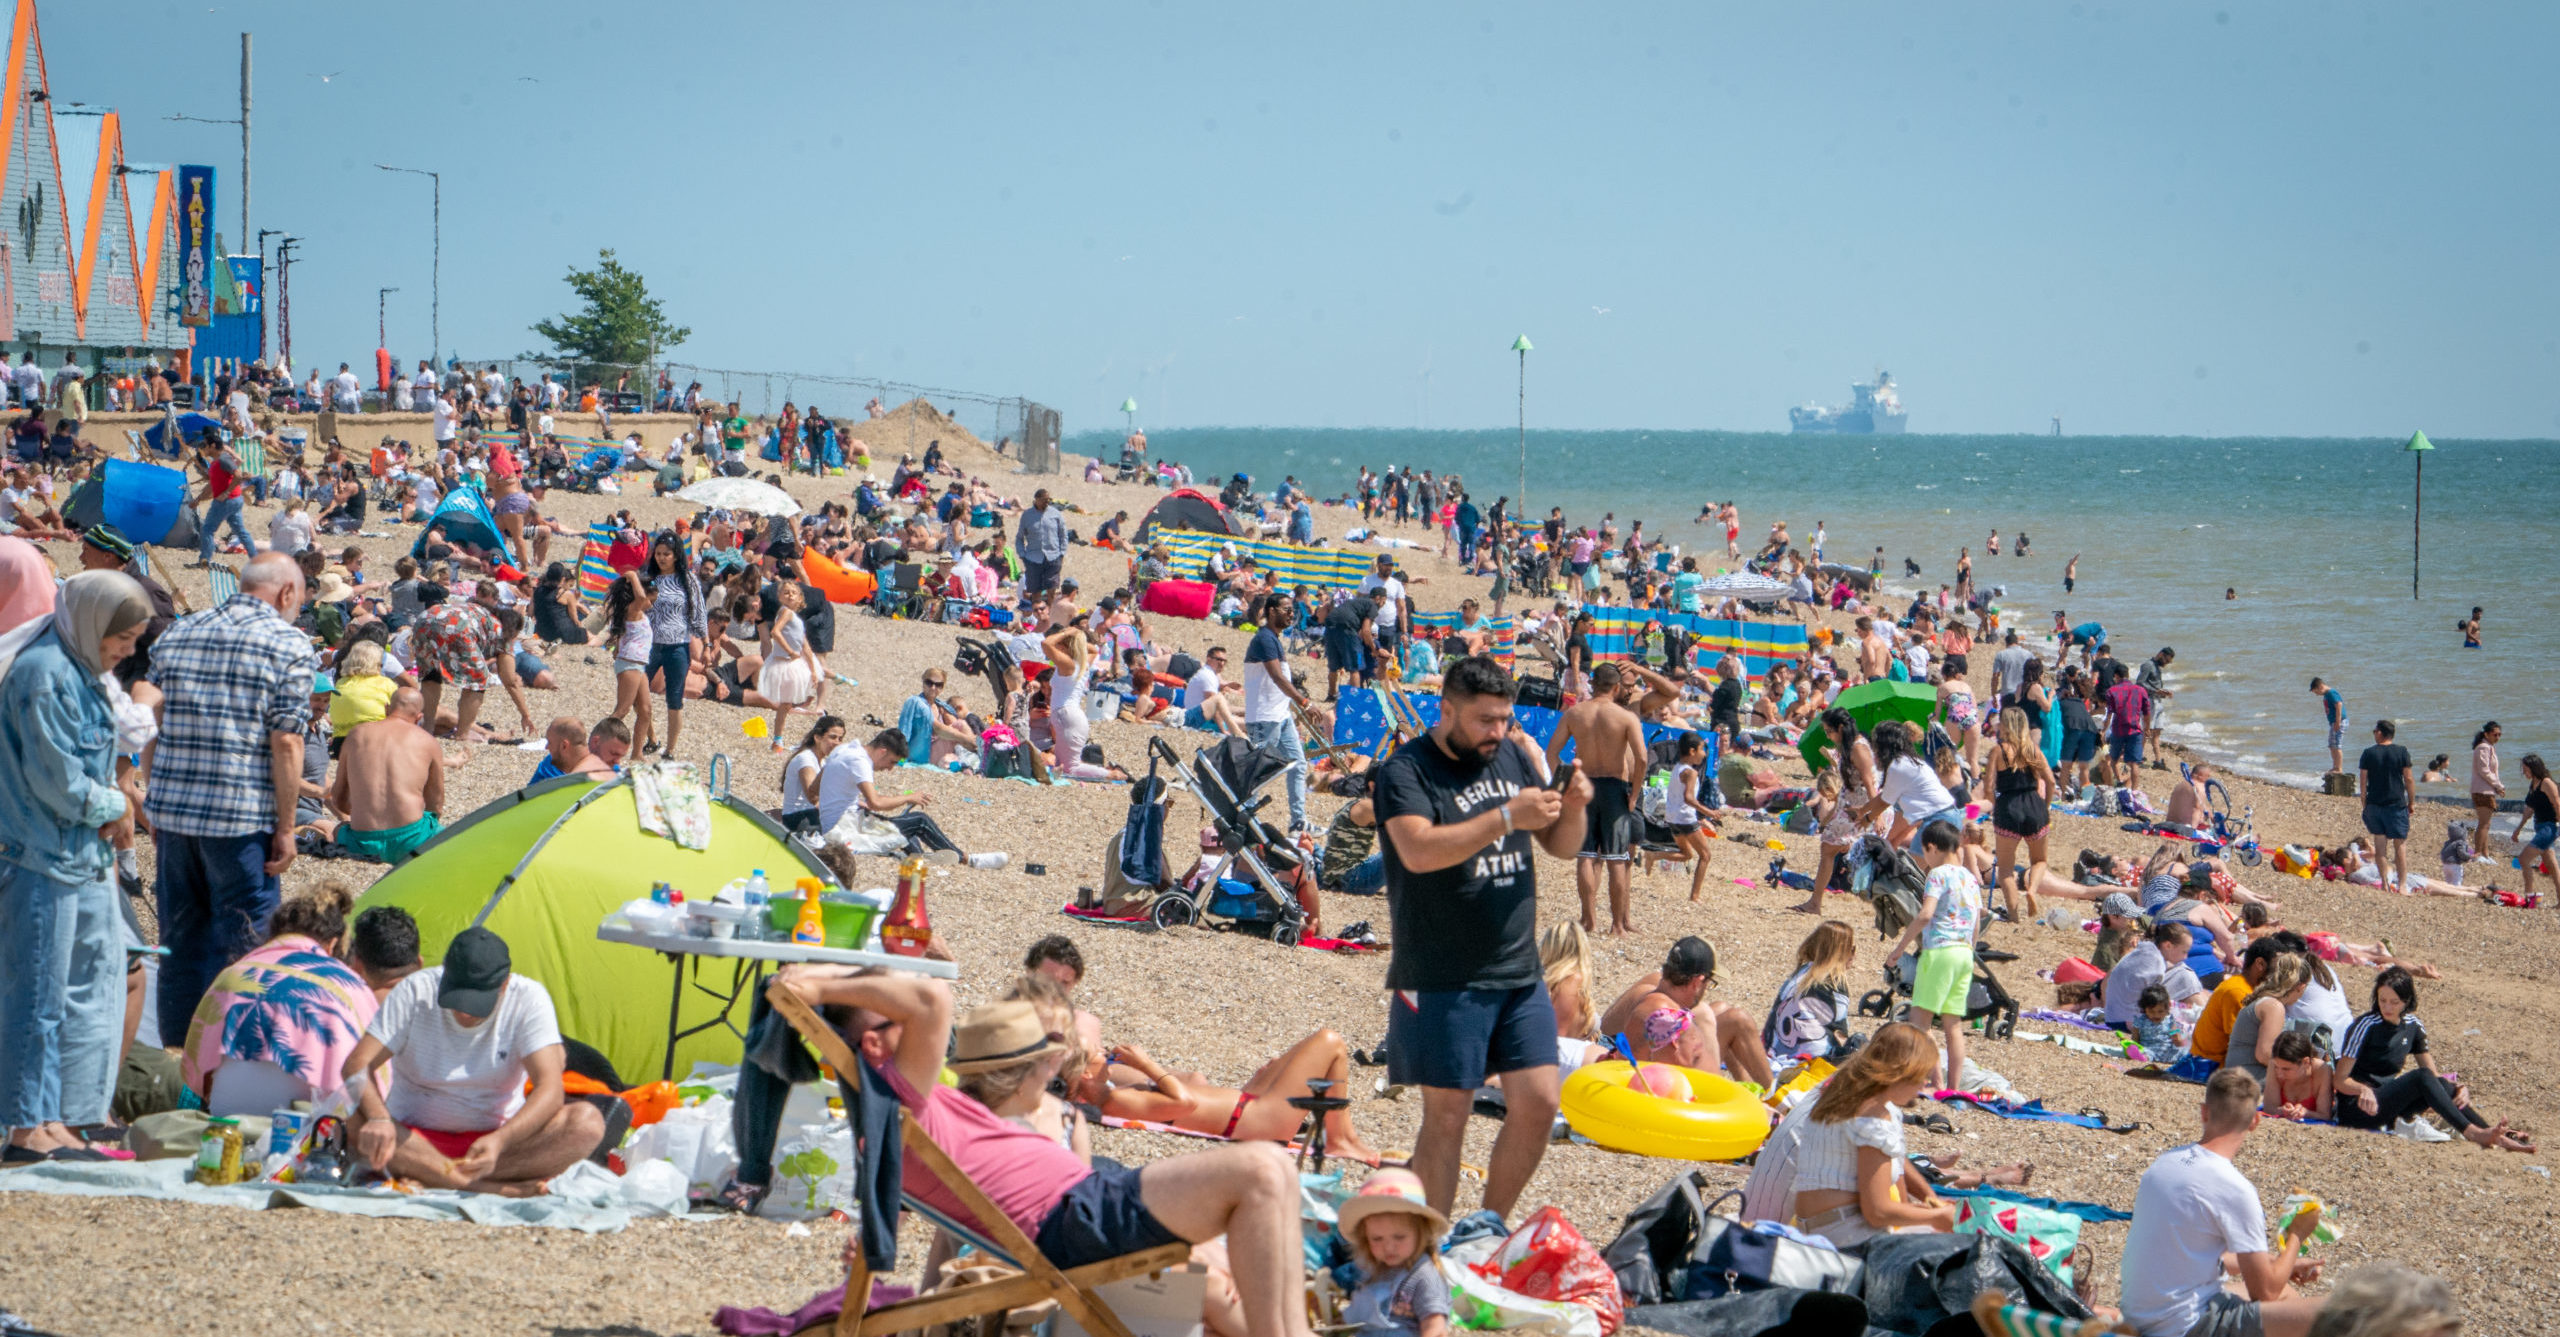 MPs warn beaches could be forced to close if crowds spark second wave